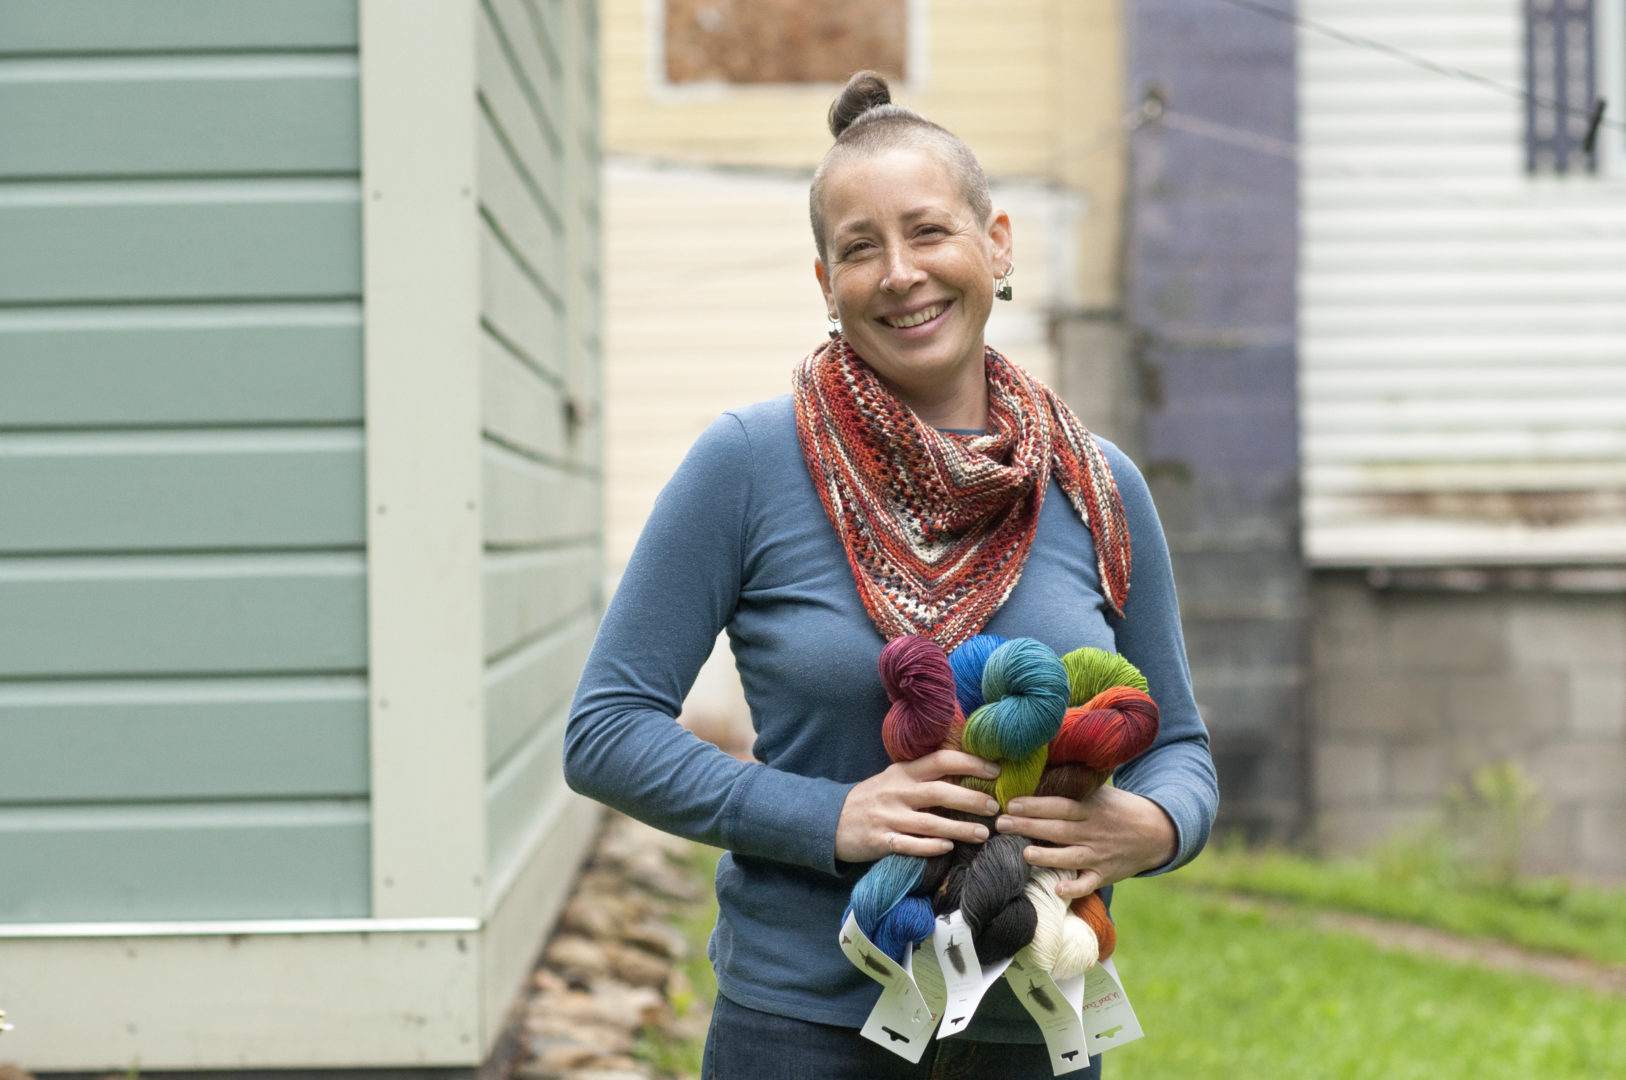 Monica MacNeille of Round Mountain fibers wears a blue sweater and jeans and poses with her hand-dyed, hand-spun yarns, holding skeins in a variety of blue, green and red shades